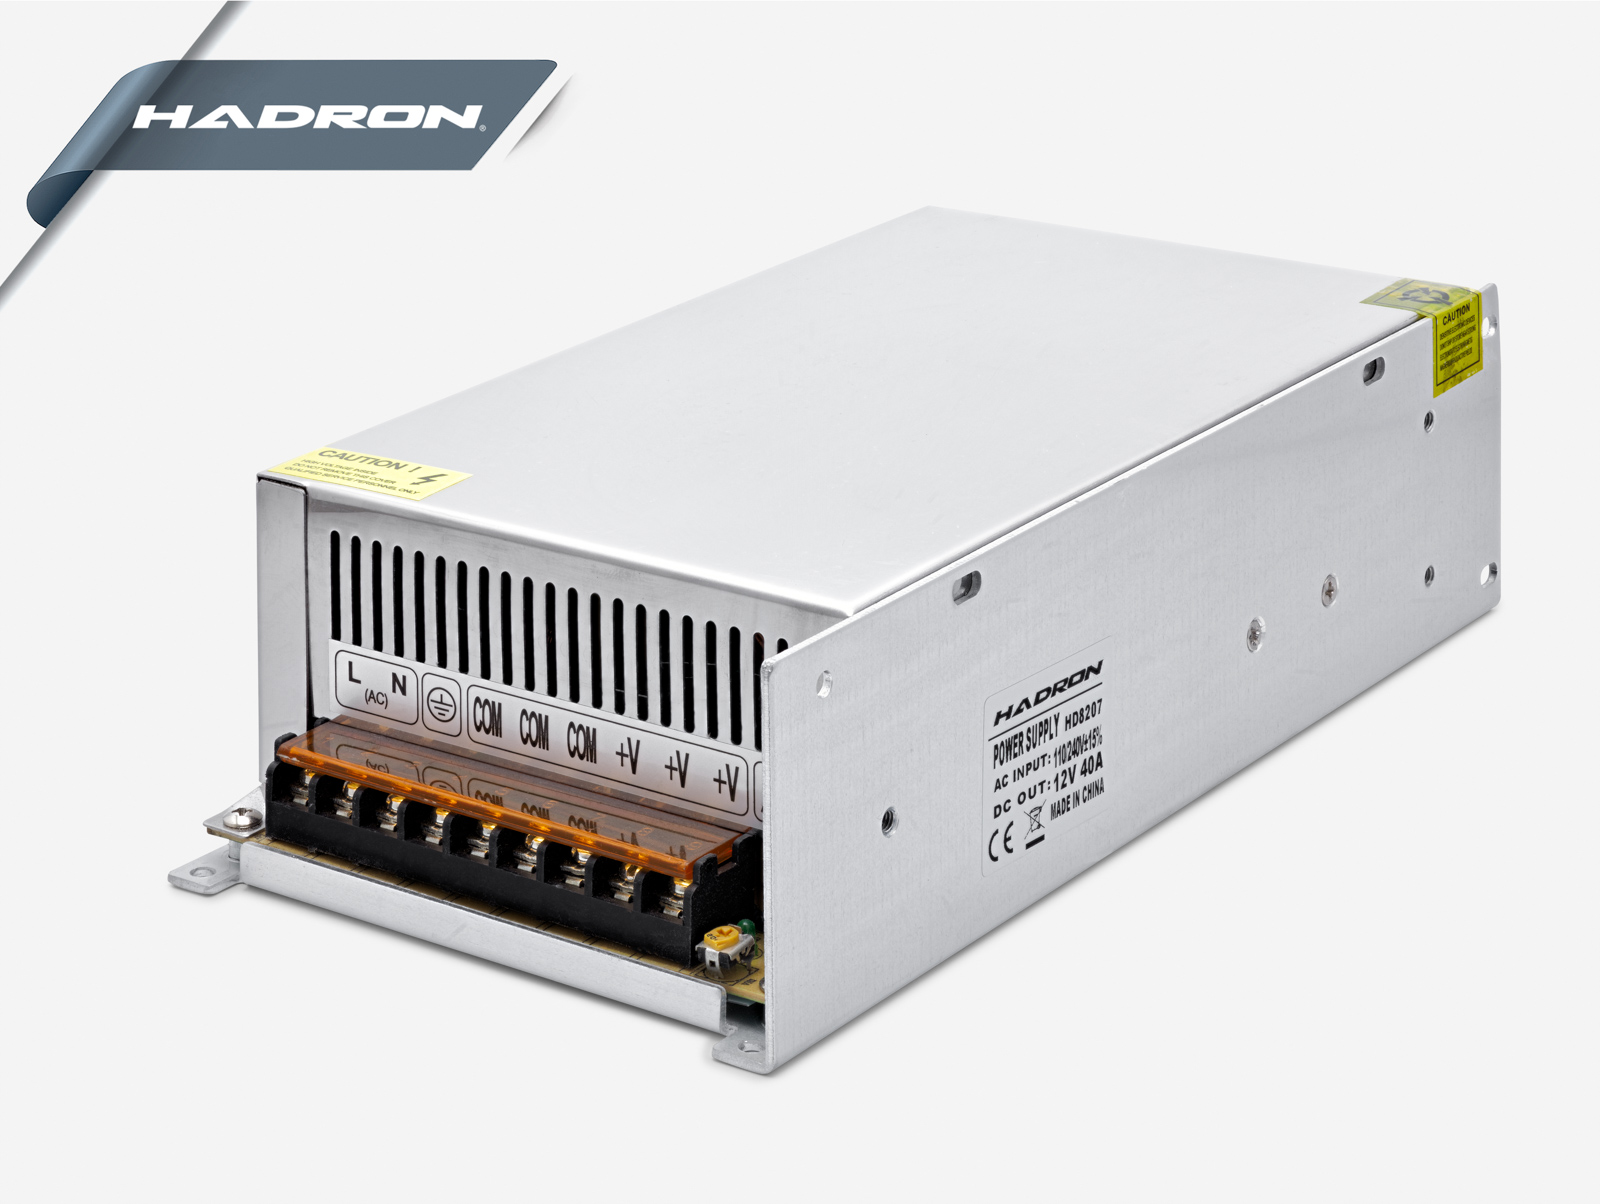 Hadron Hd8207 12V 40A 24*12.5*6.5Cm Metal Adaptör